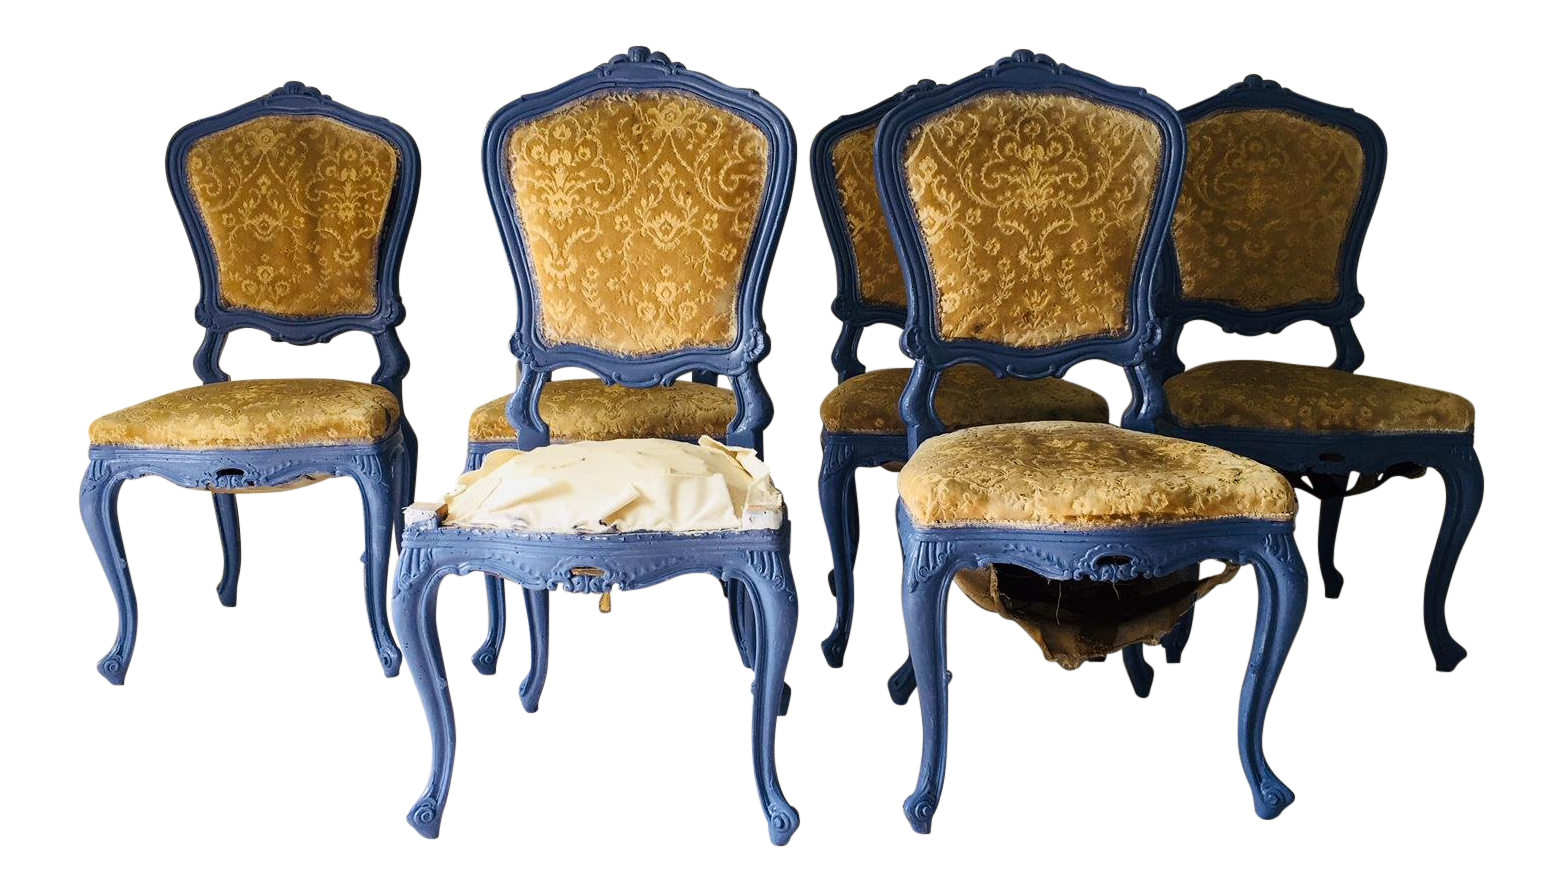 Vintage French Provincial Dining Chair Frames (6) Newly Painted Provence Blue | Chairish  sc 1 st  Chairish & Vintage French Provincial Dining Chair Frames (6) Newly Painted ...